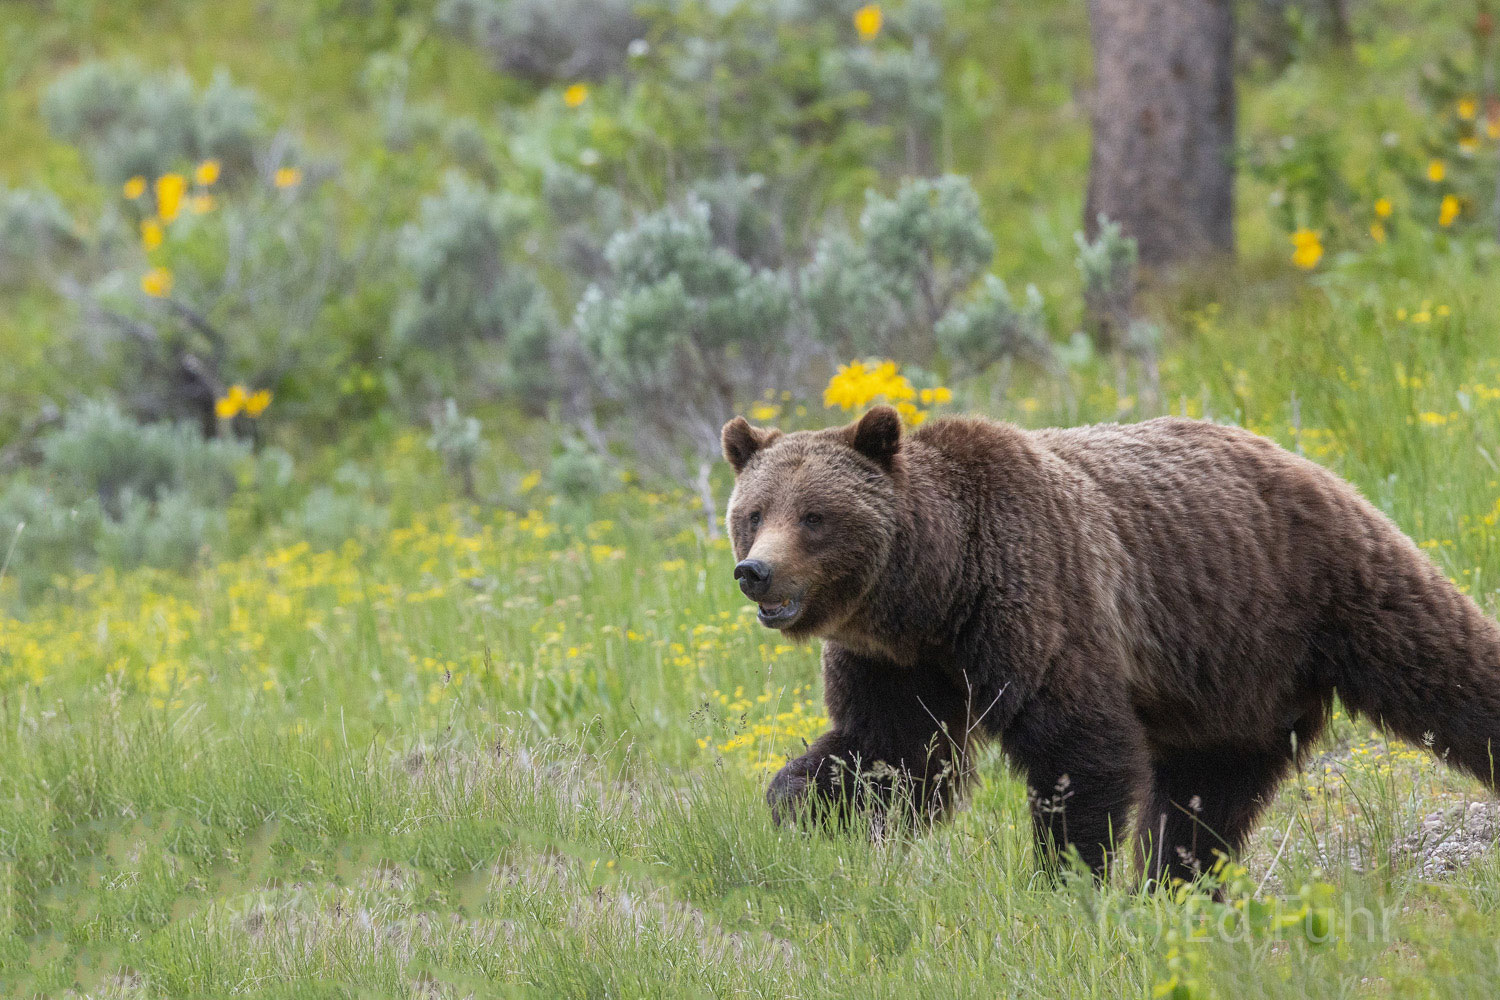 Grizzly 399 cuts an imposing figure.